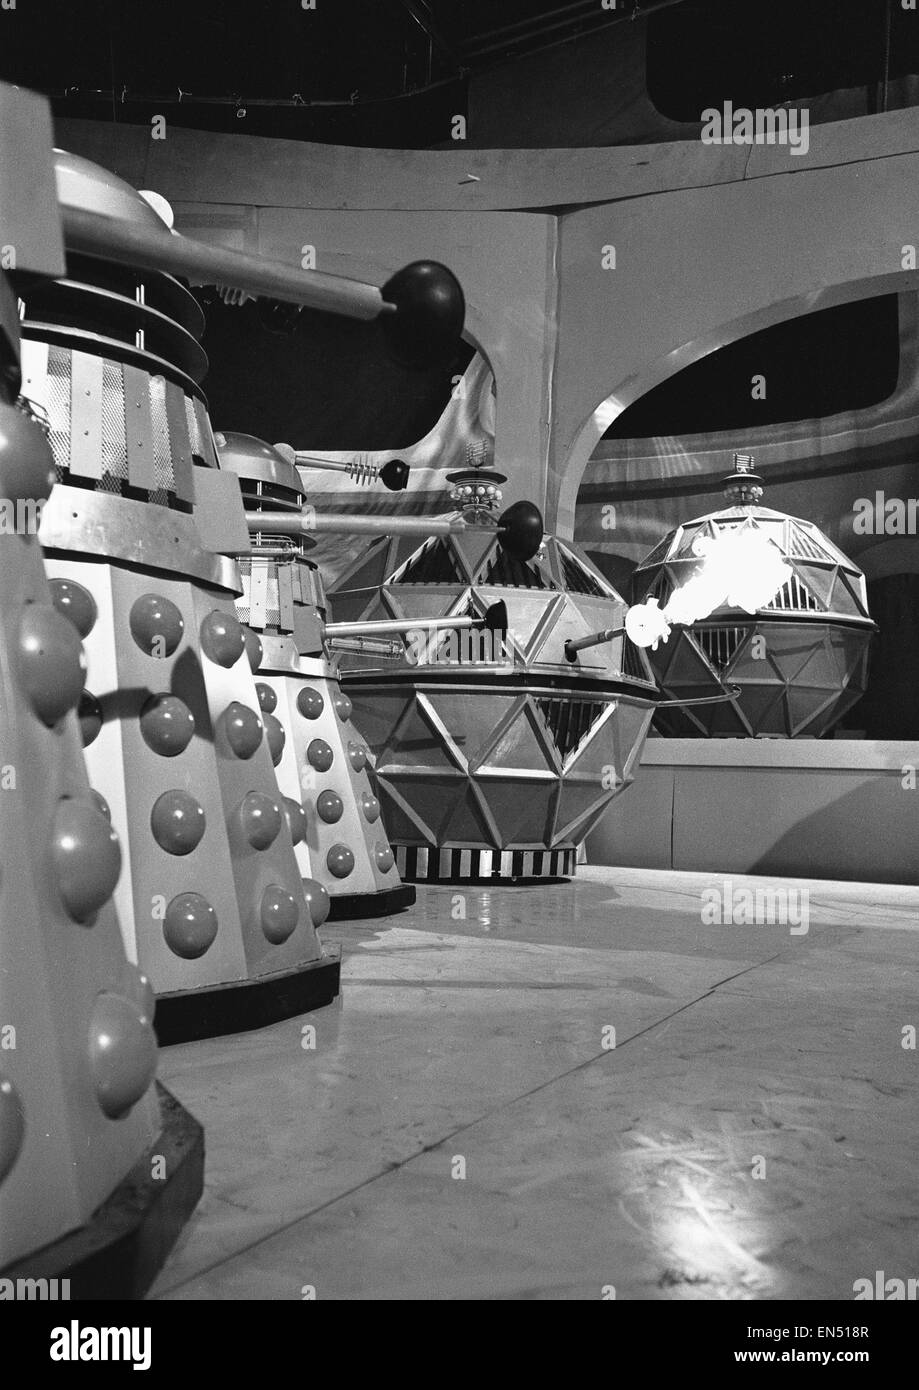 A scene from the Dr Who tv series, the story is called 'The Chase' The scene show a confrontation between - Stock Image